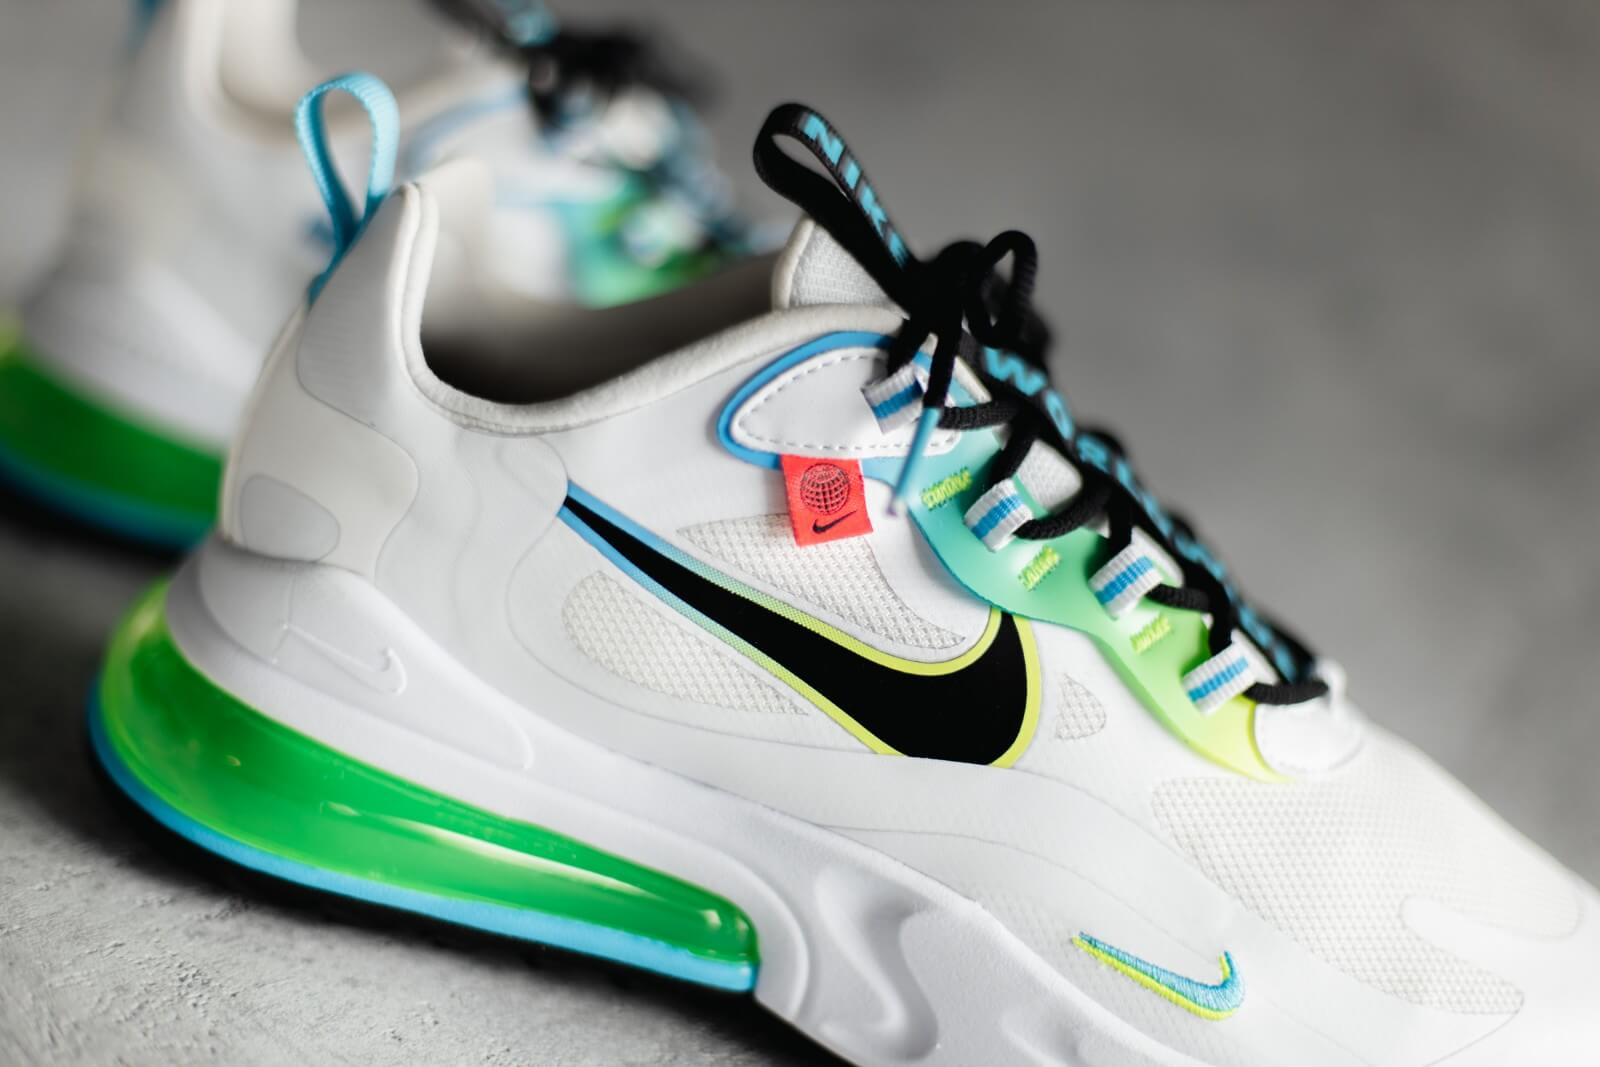 Nike Air Max 270 React Se Worldwide Pack White Black Blue Fury